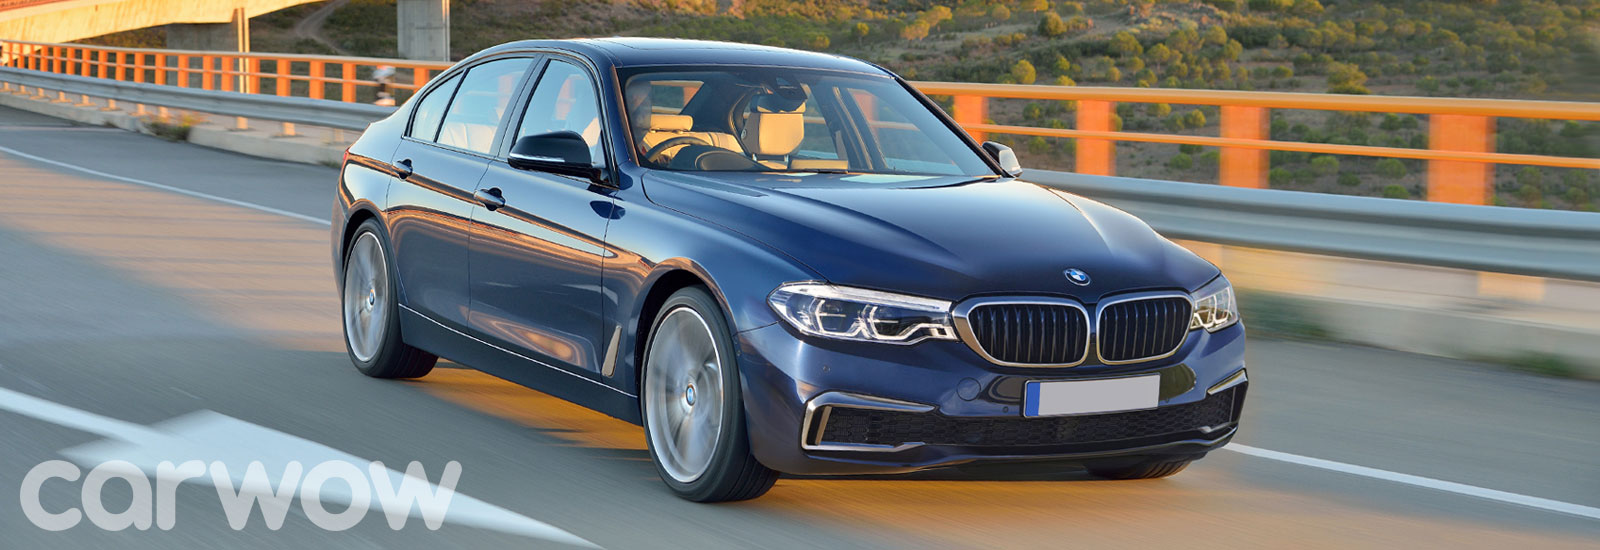 2018 bmw g20. interesting g20 bmw 3 series styling to 2018 bmw g20 0